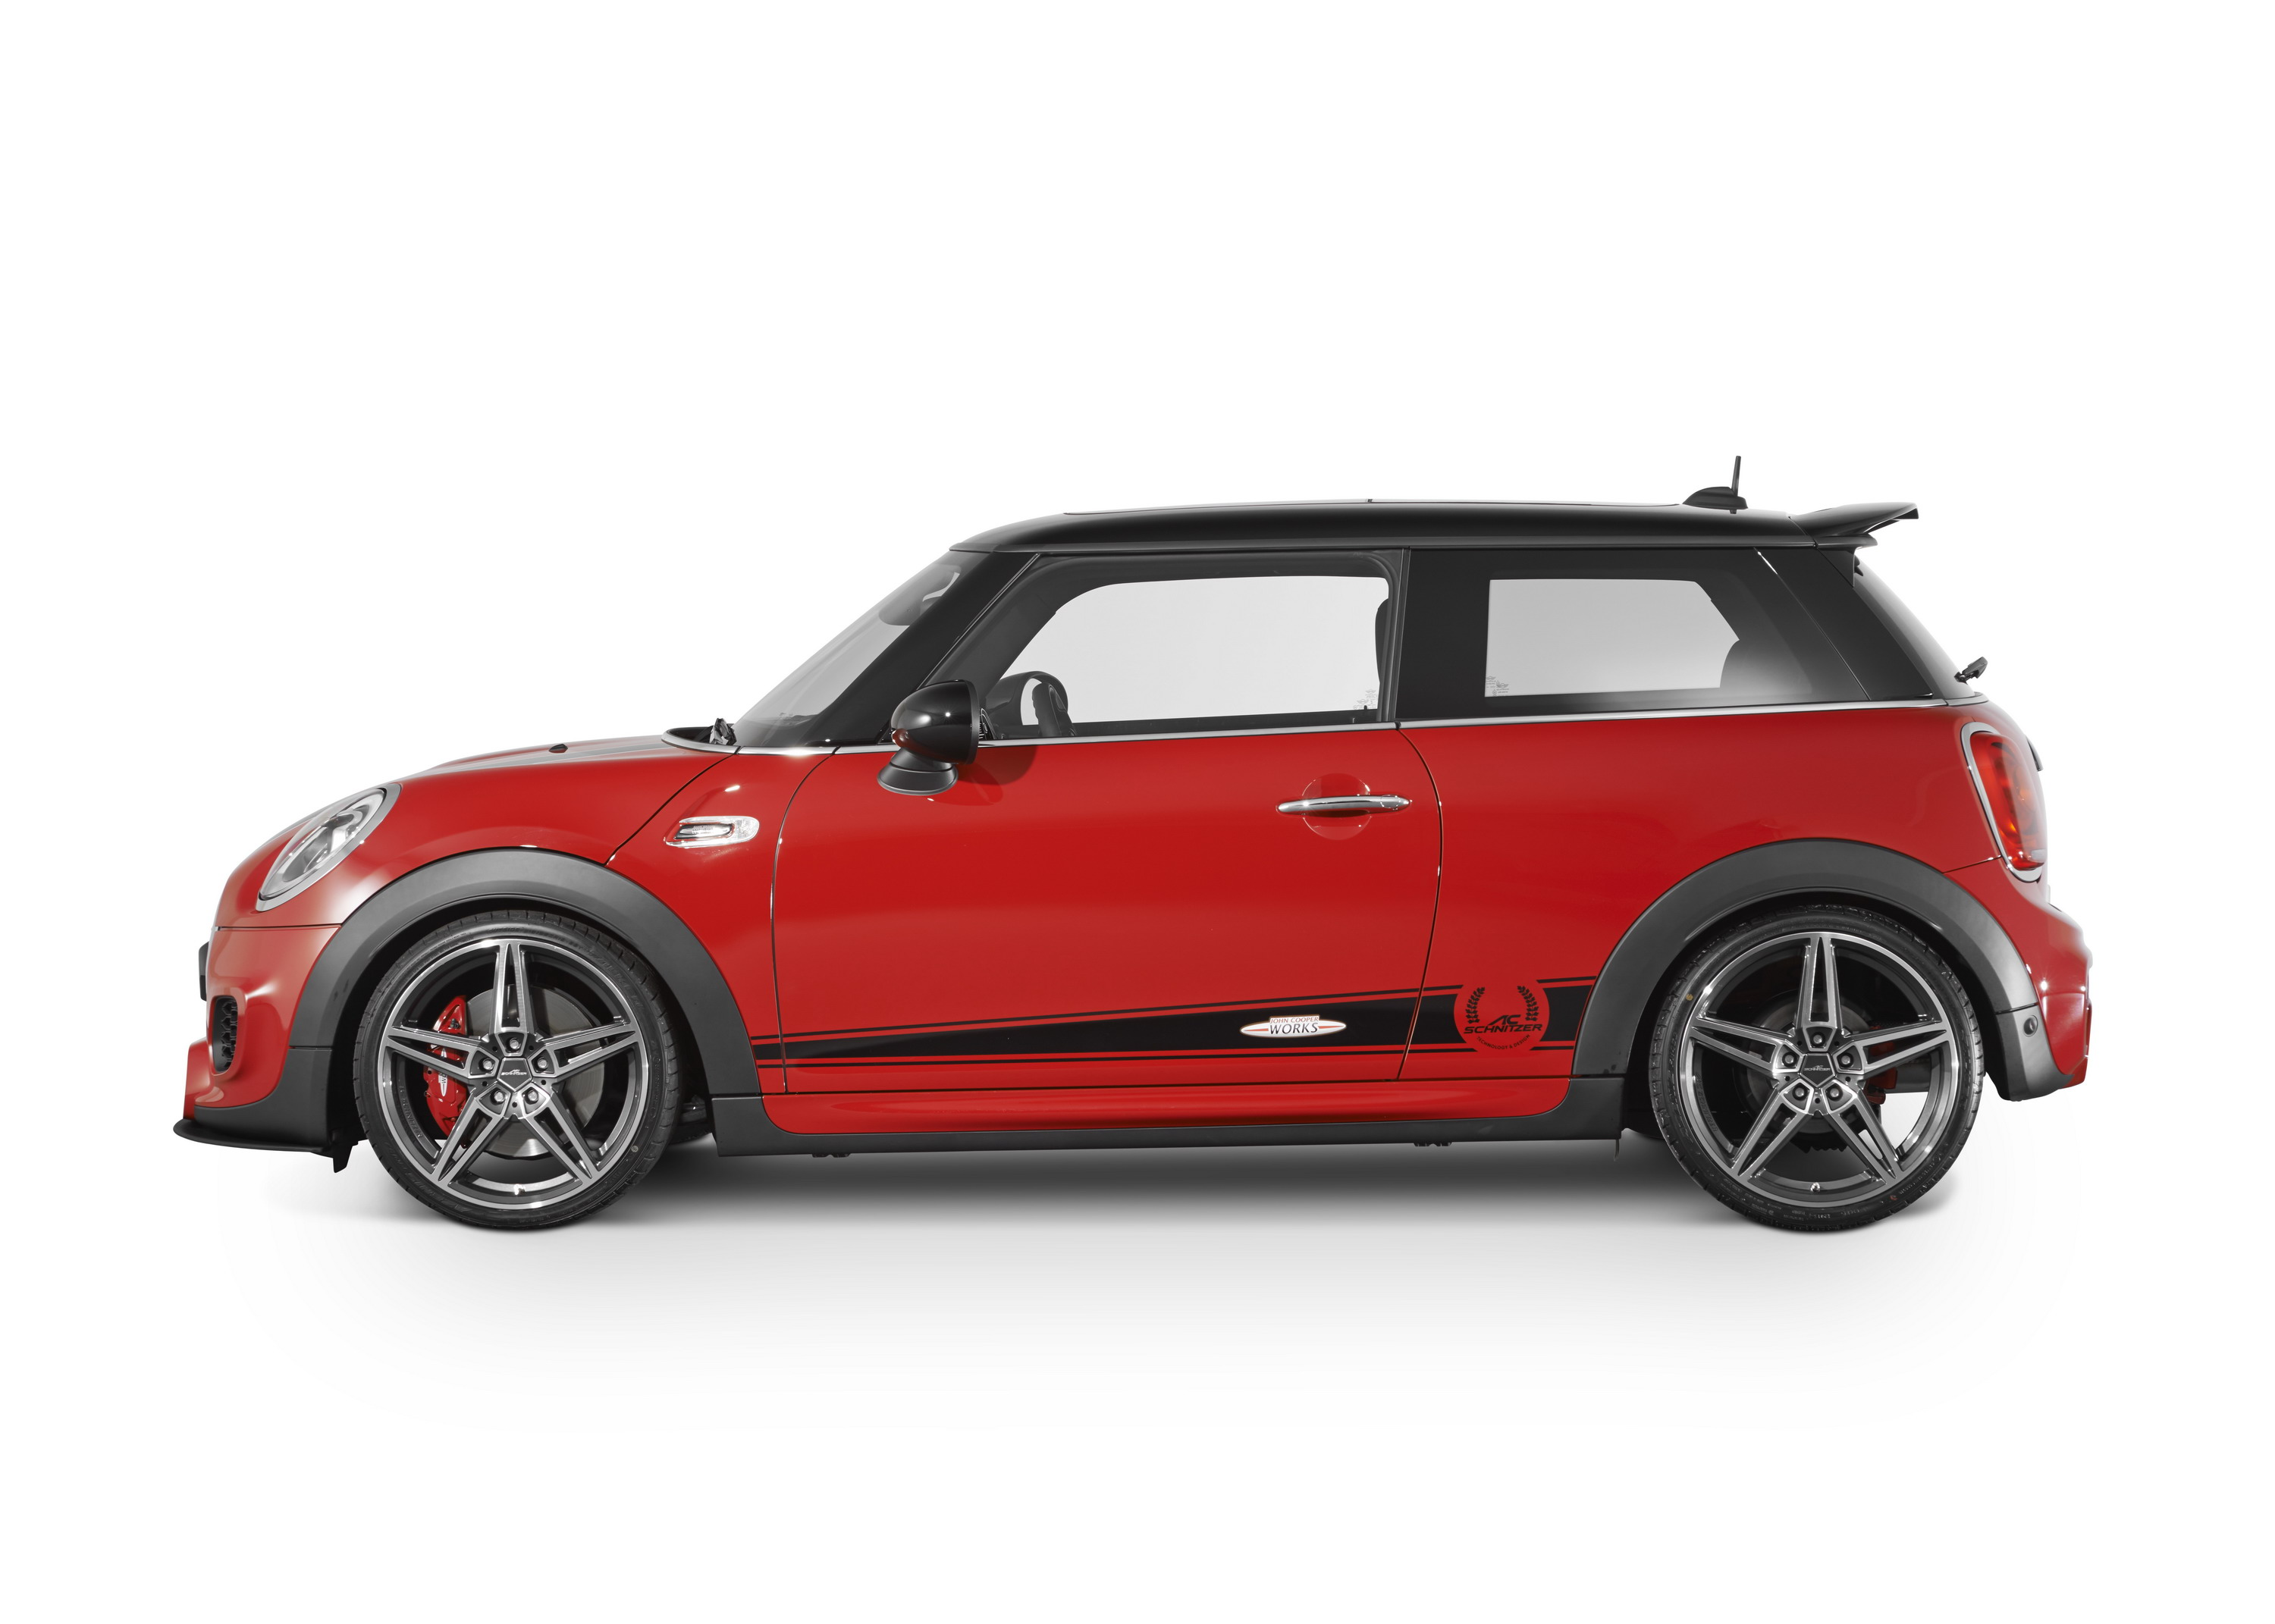 mini john cooper works by ac schnitzer gallery 657686 top speed. Black Bedroom Furniture Sets. Home Design Ideas